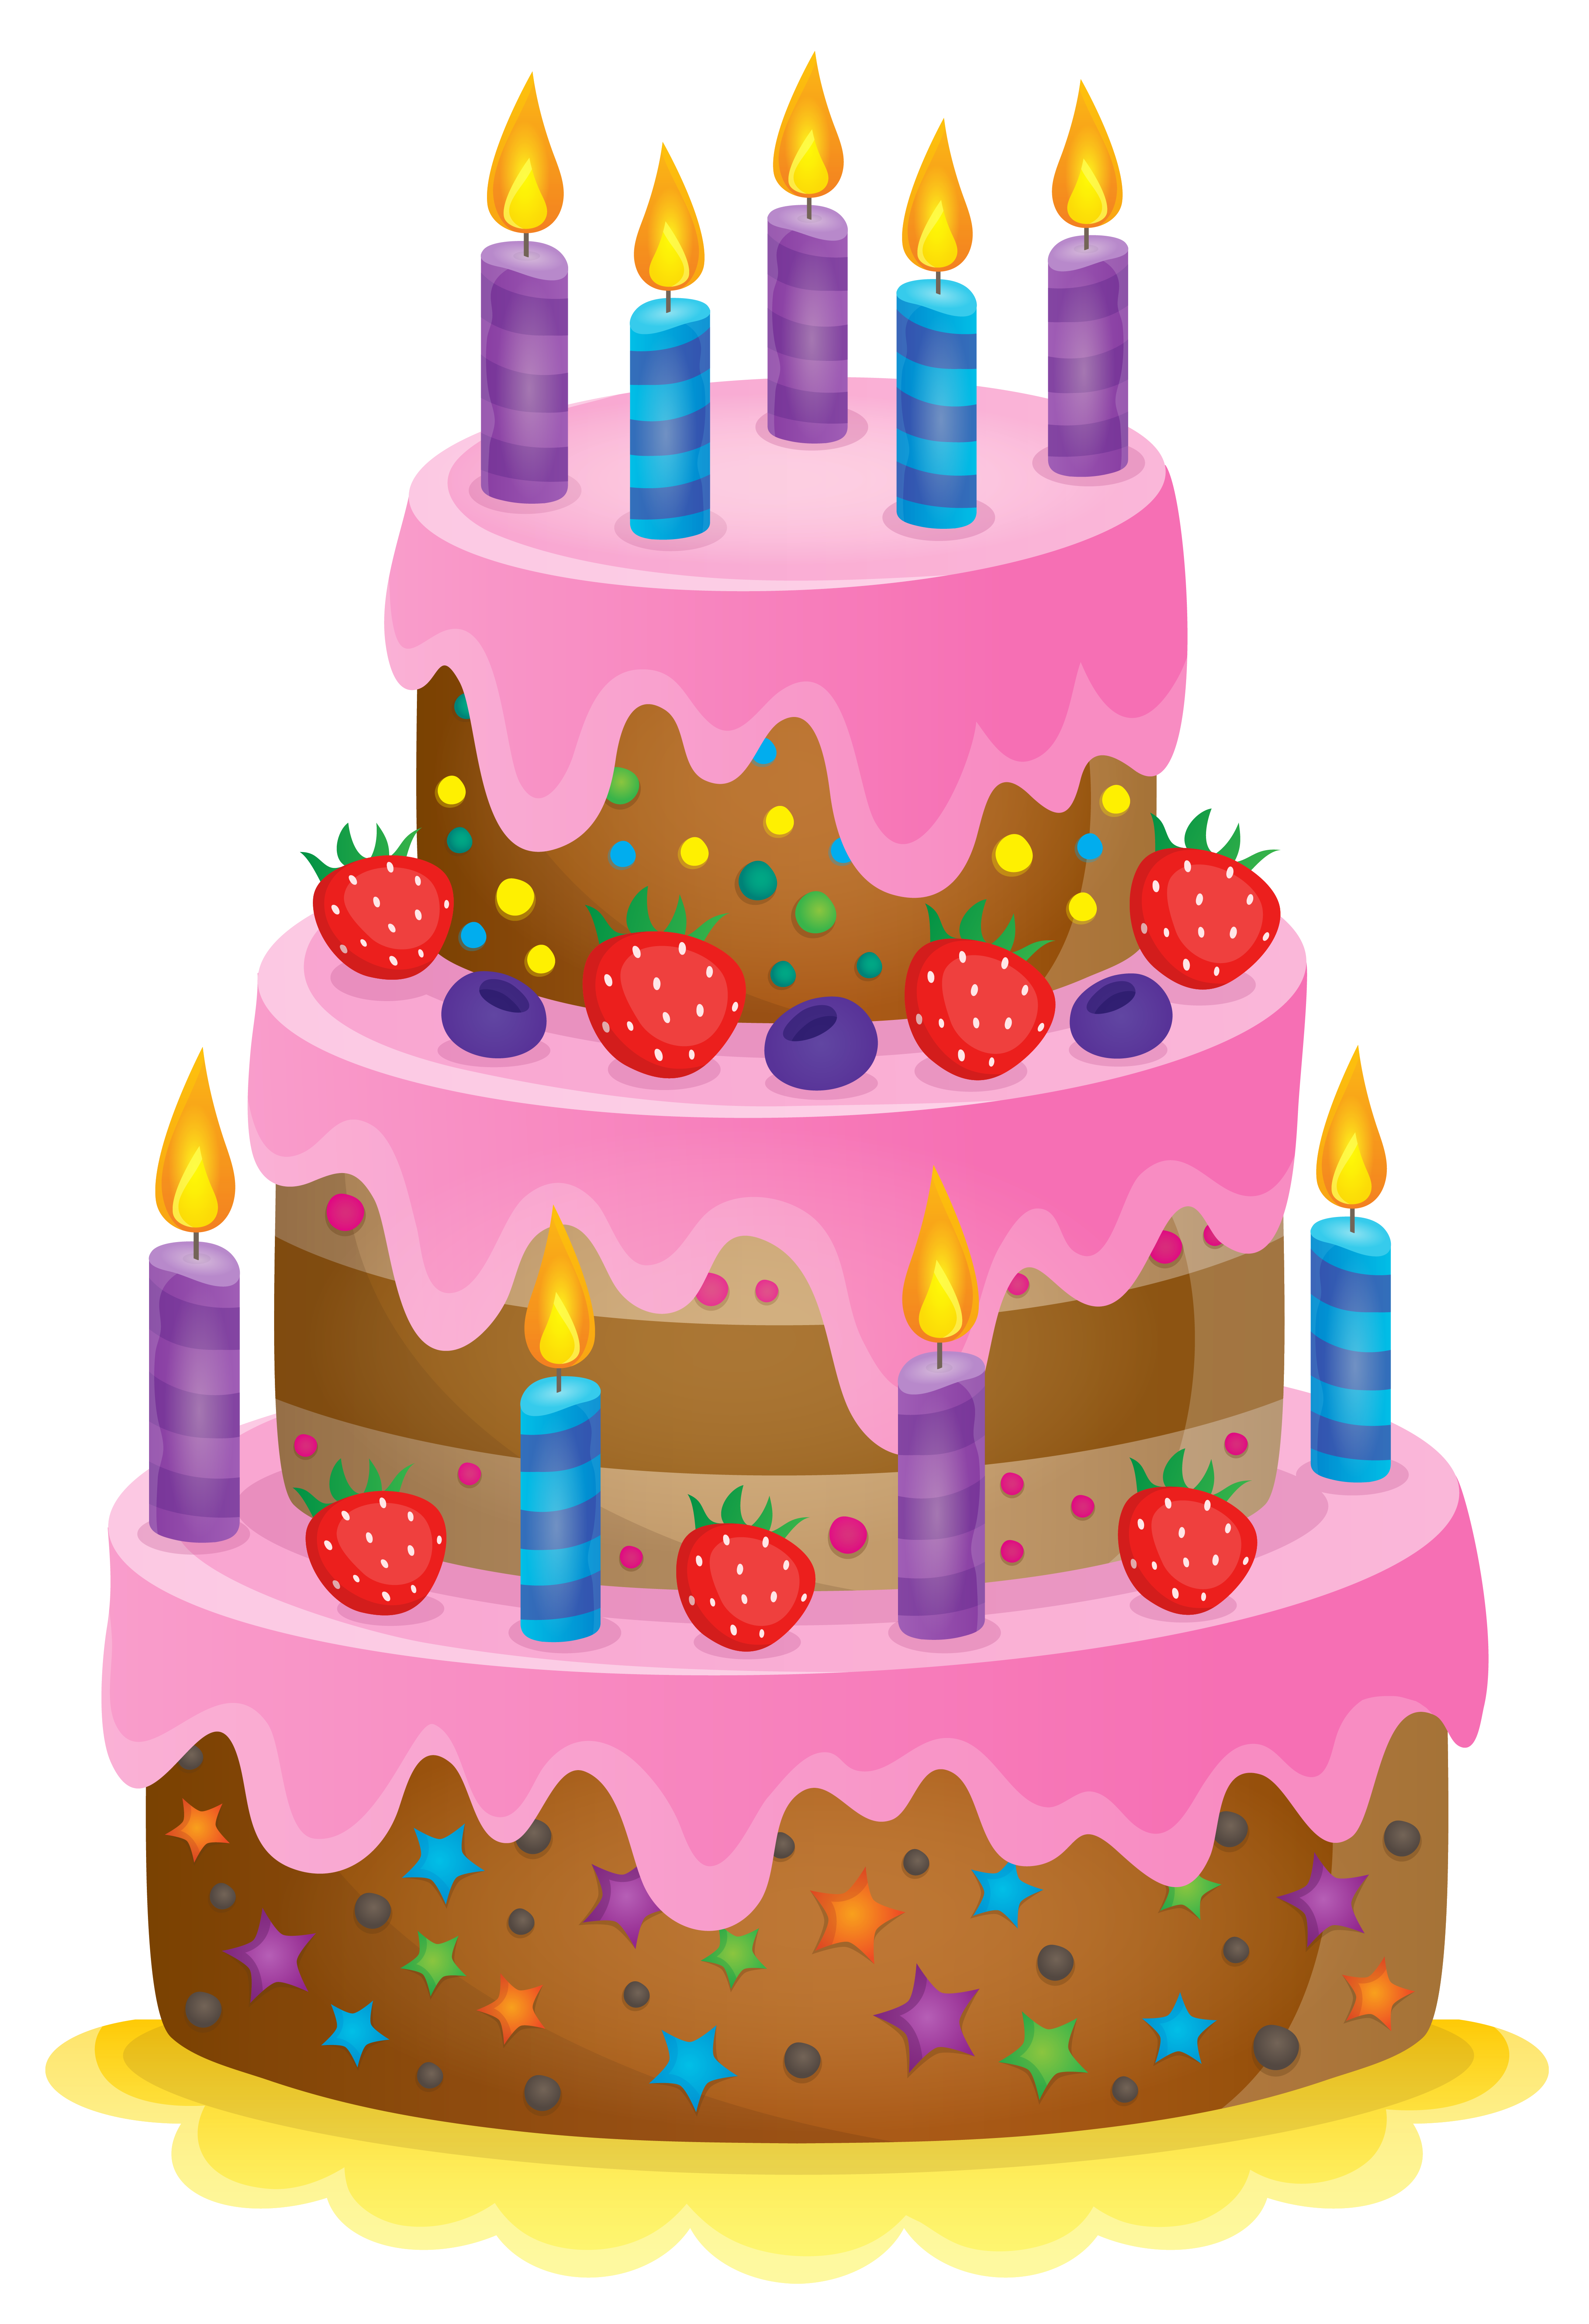 Chalk cake png. Collection of clipart